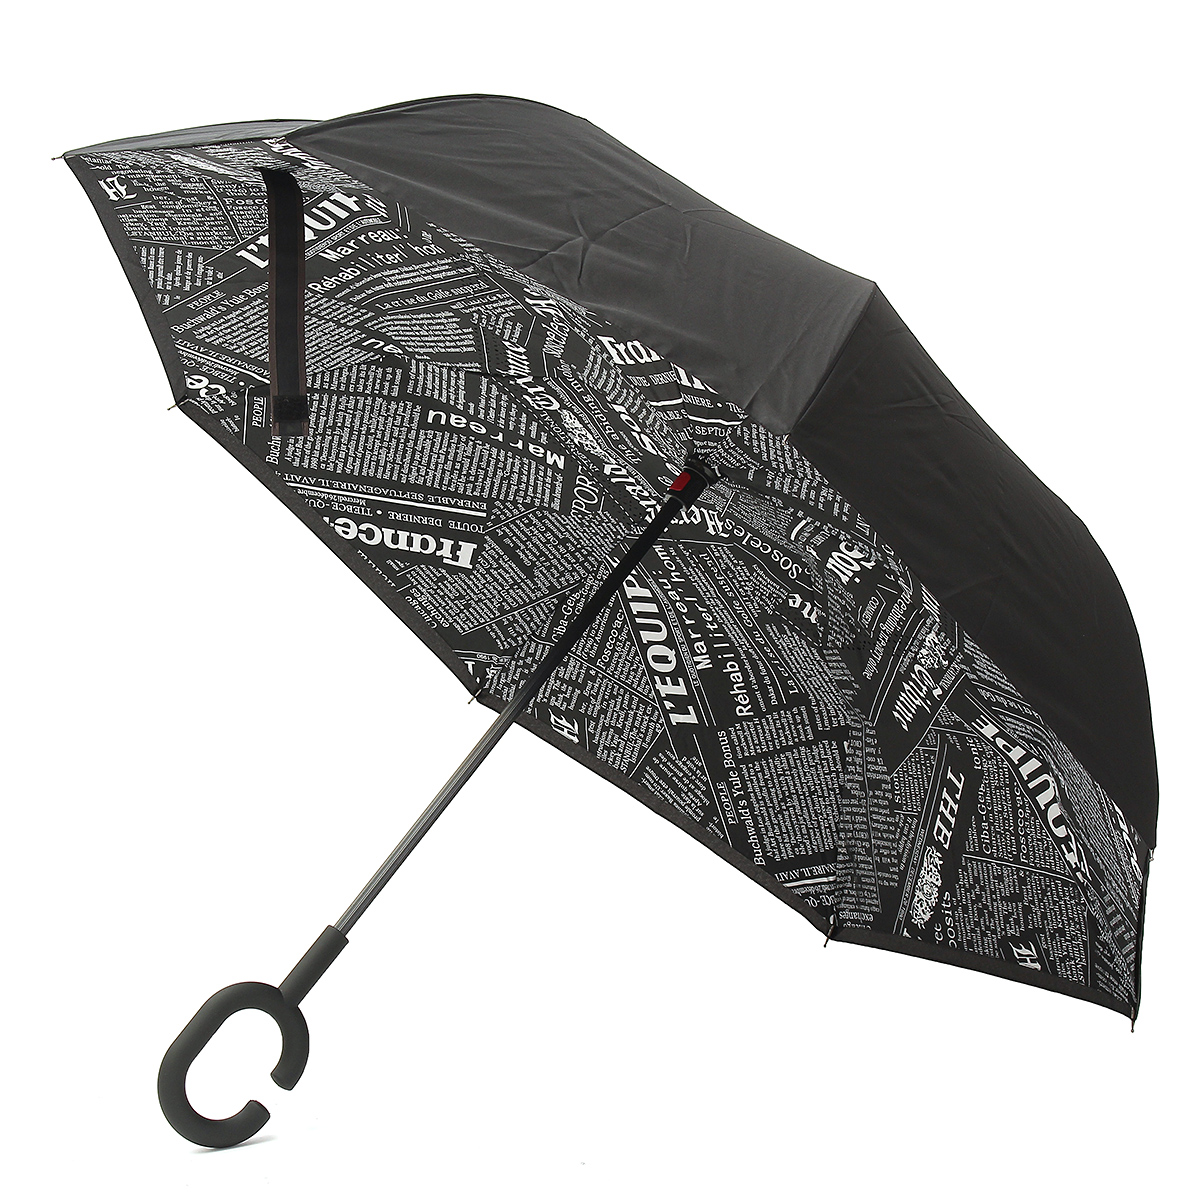 cedeefd0fff4 US $13.19 44% OFF|Waterproof UV Protection Handle Double Layer Long Upside  Down Reverse Umbrella Folding Reverse Inverted Rain Car For Women Anti-in  ...